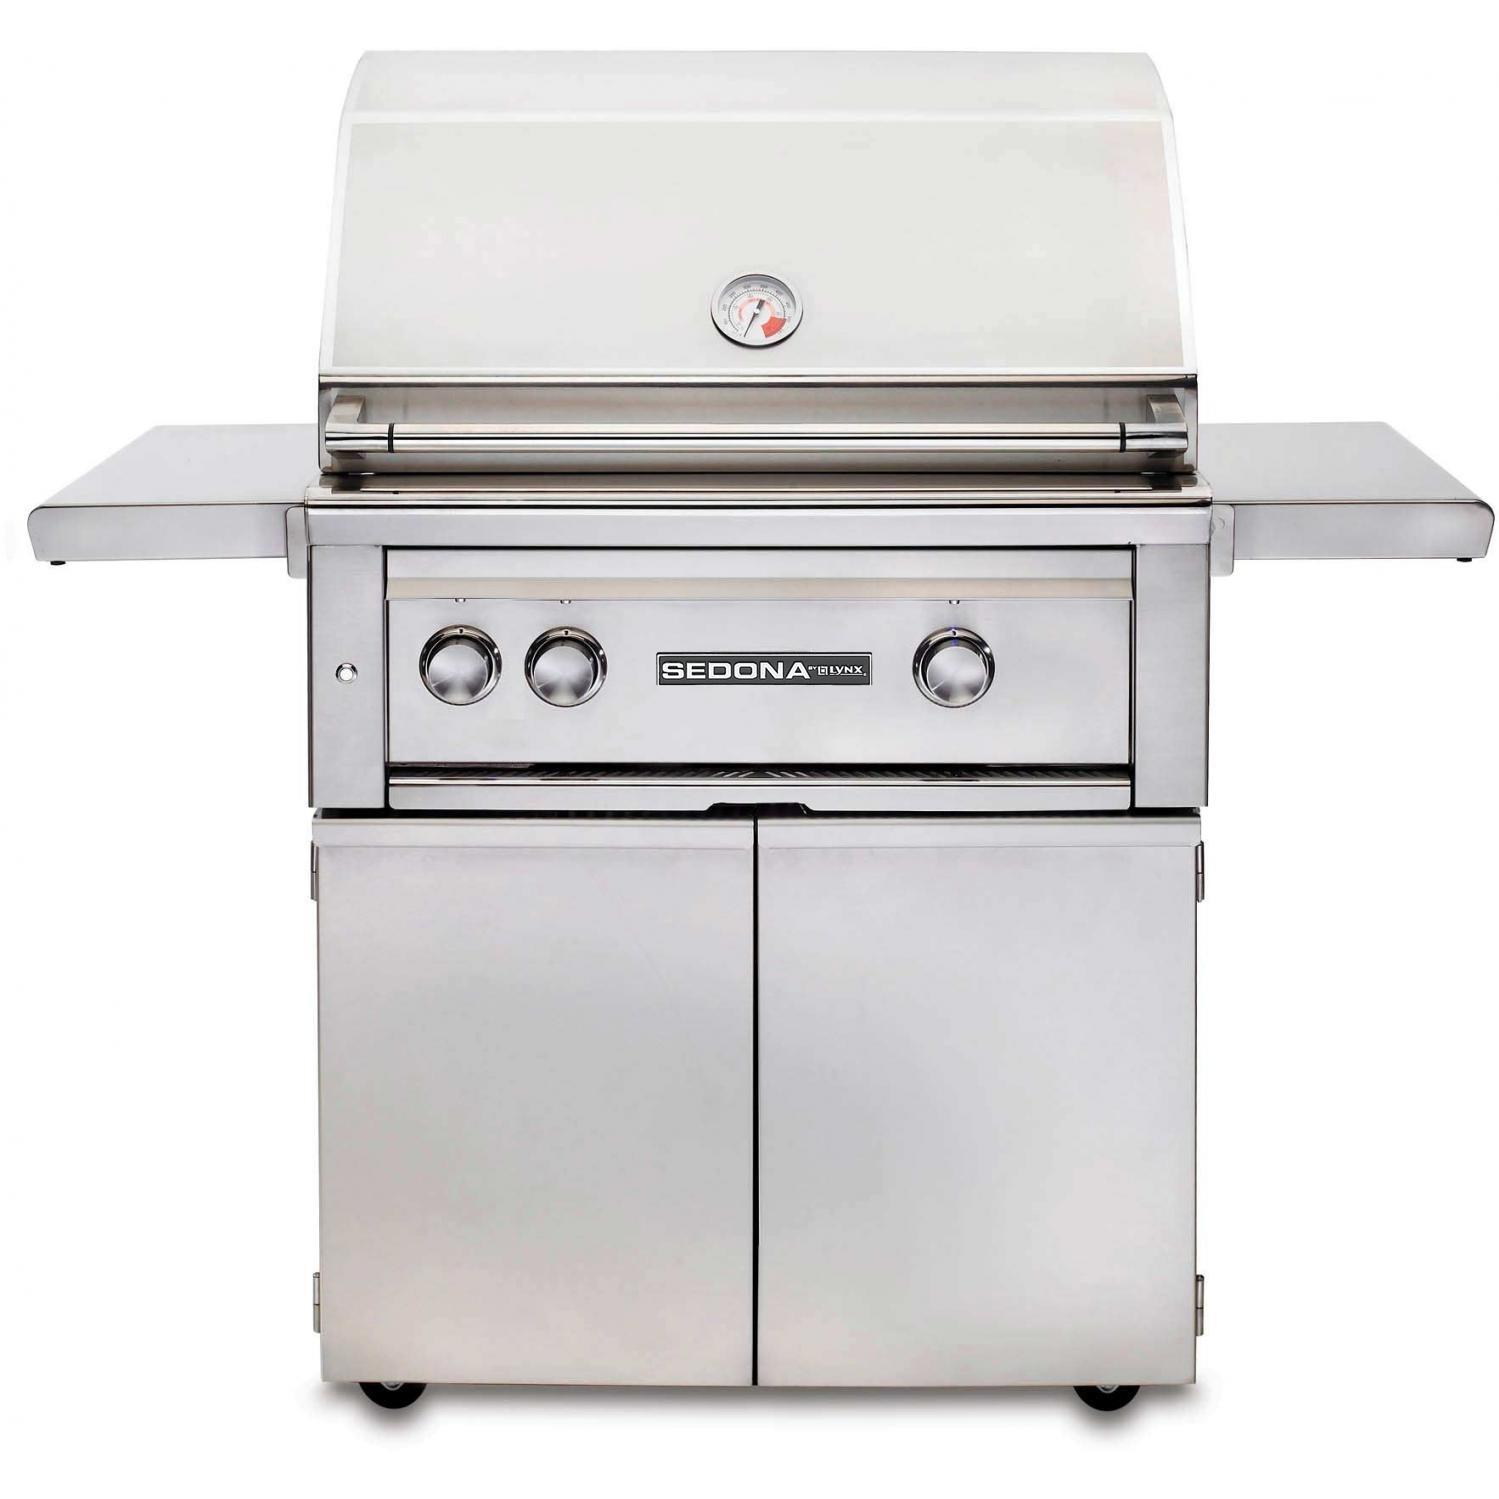 Lynx Sedona By Lynx 30-inch Propane Gas Grill On Cart With Prosear Burner And Rotisserie L500psr-lp at Sears.com